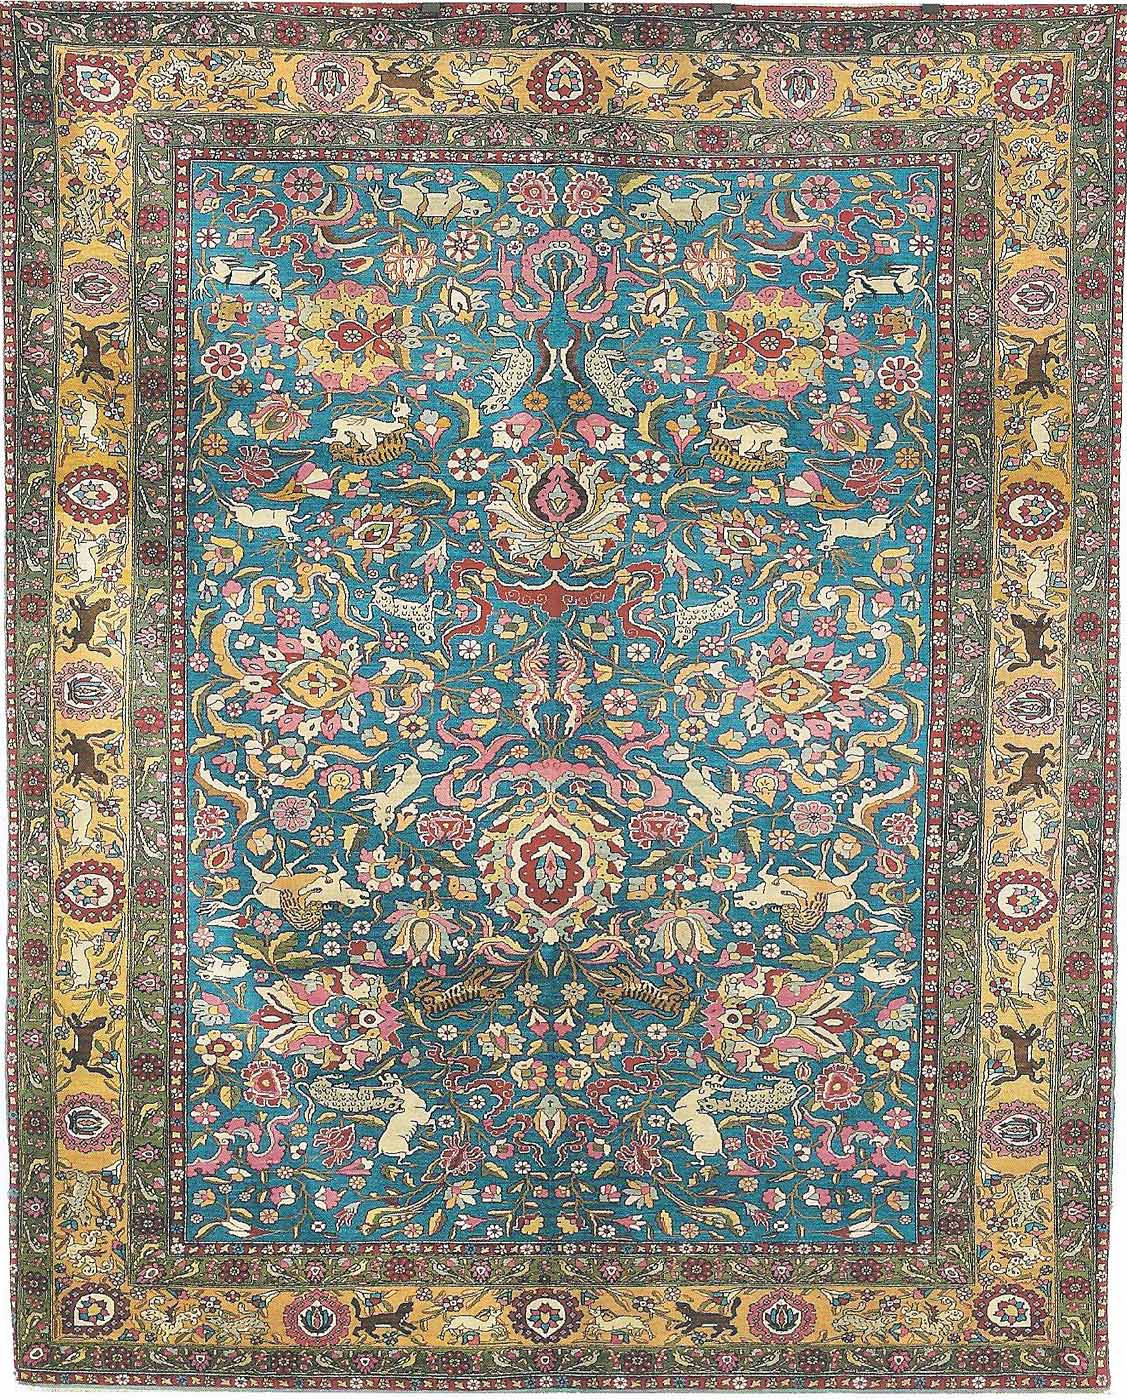 Tehran Rugs Is Very Hard To Find And It Expensive